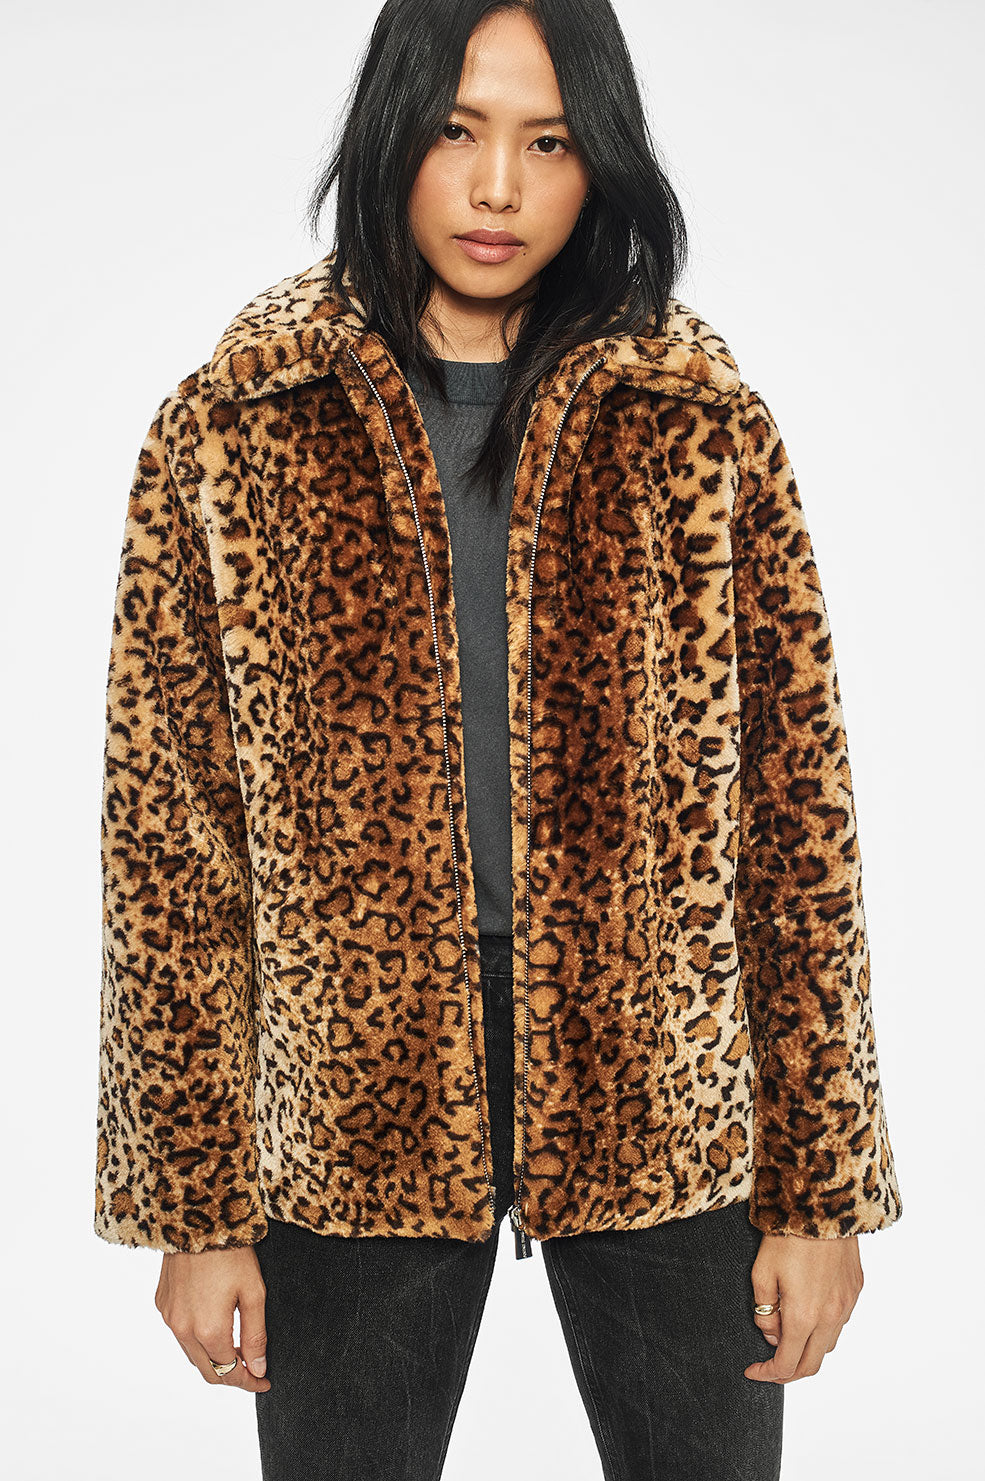 ANINE BING Molly Faux Fur Jacket - Leo